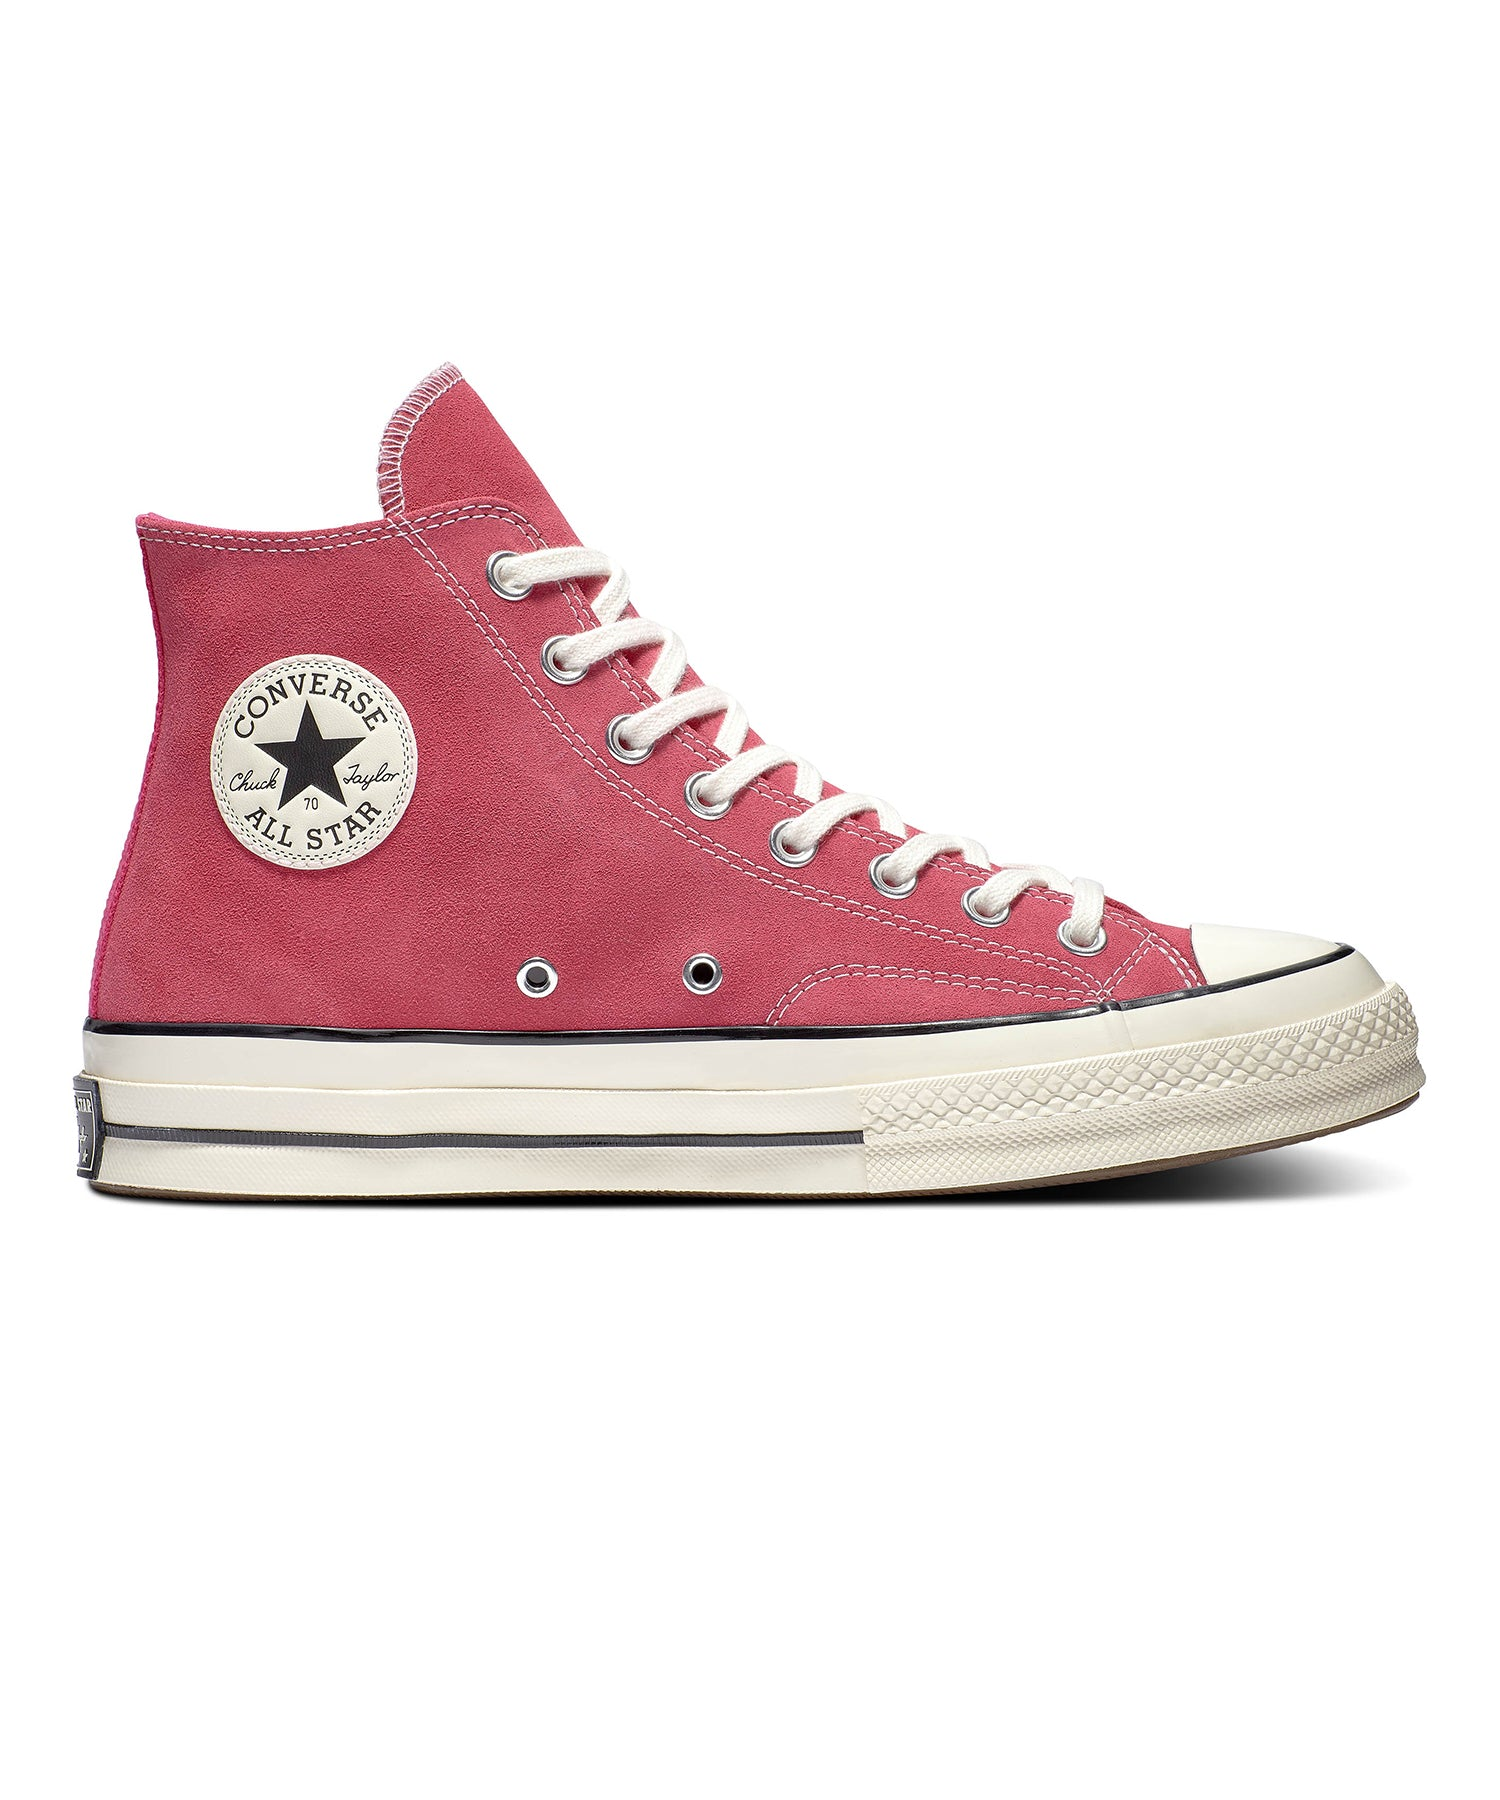 Converse Suede Chuck 70 High in Prime Pink